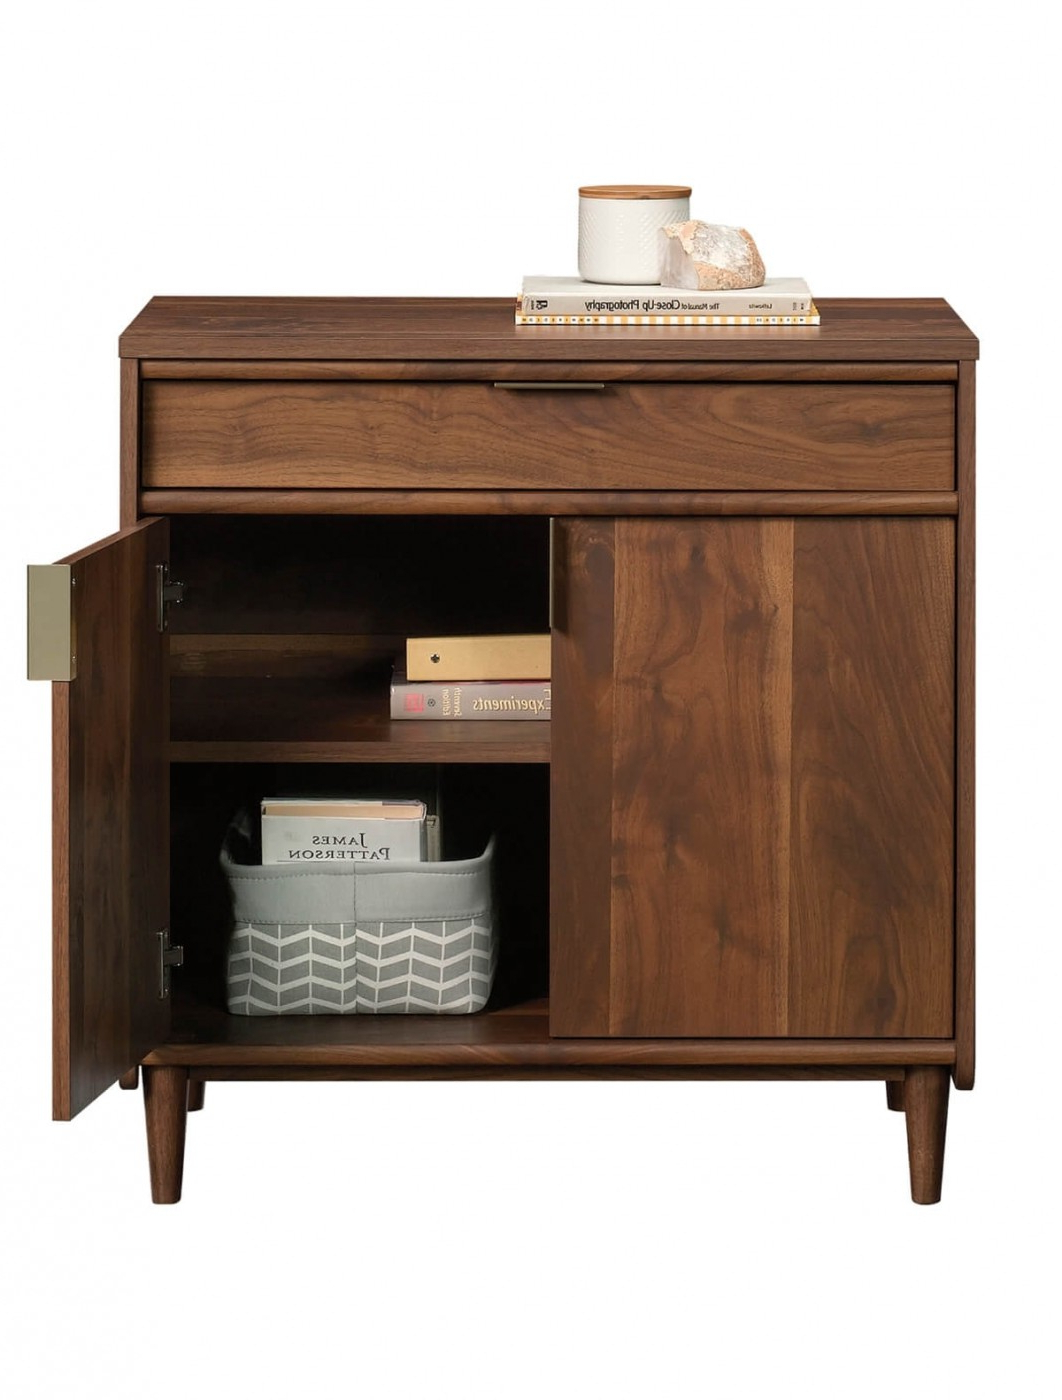 2020 Home Office Storage – Clifton Place Walnut Sideboard 5421115 Intended For Clifton Sideboards (View 1 of 20)